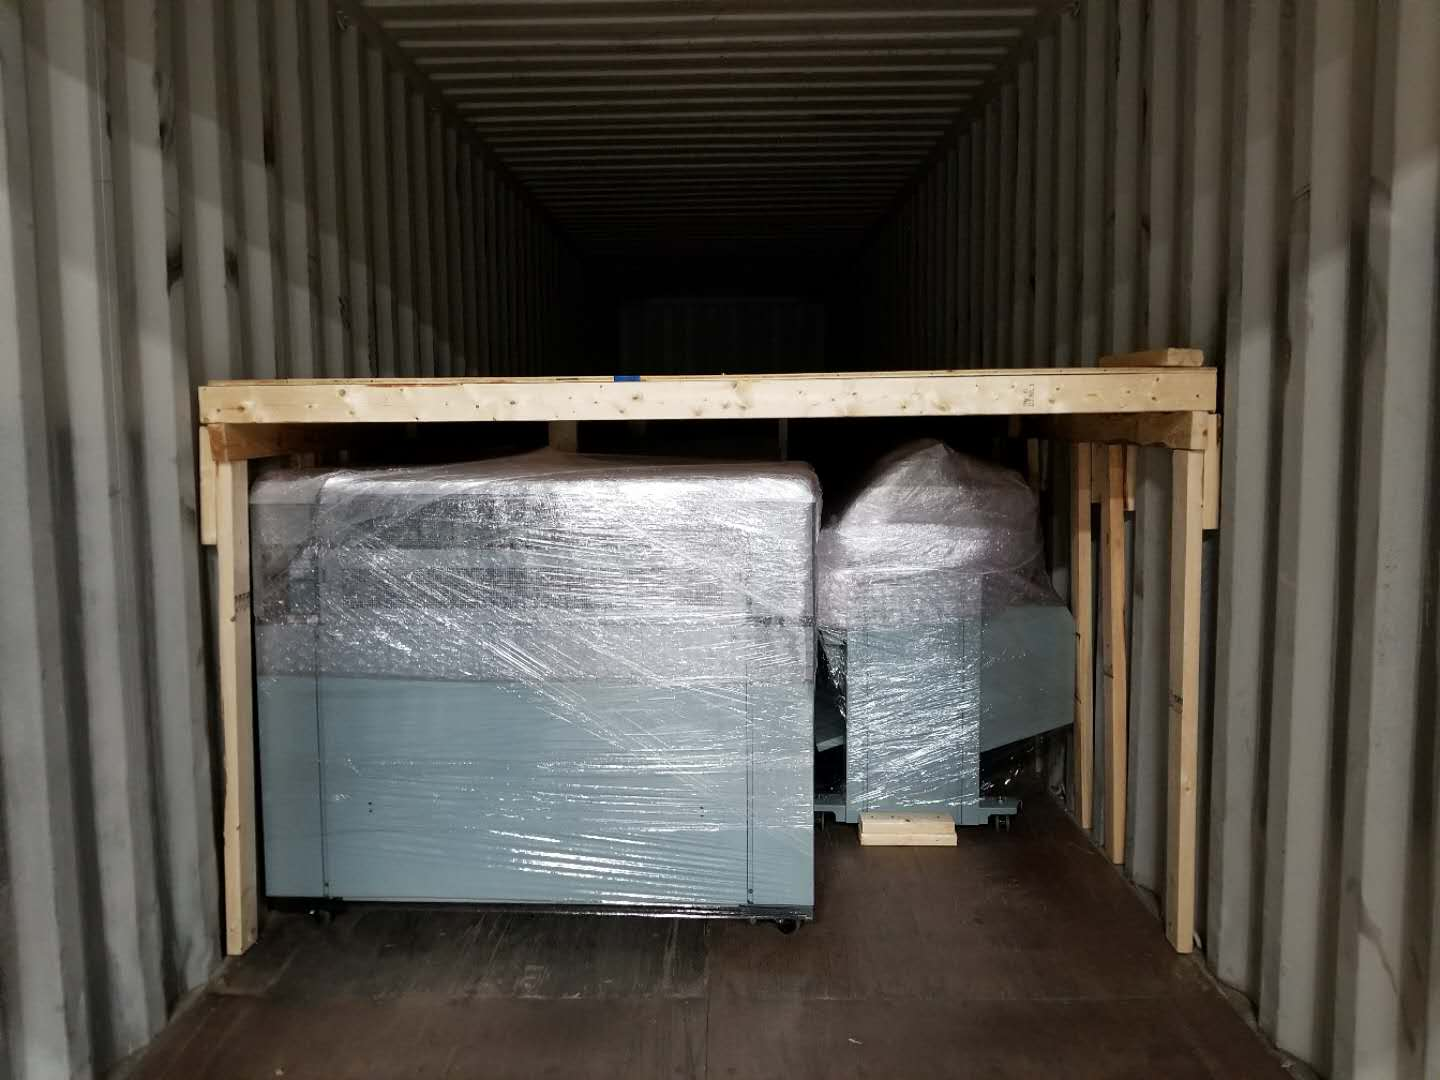 Importing Used Copiers? - We build the container from scratch and create two levels in order to save shipping costs.Our containers are built by our trained staff who make sure that there are no damage during transportation and exporting overseas.